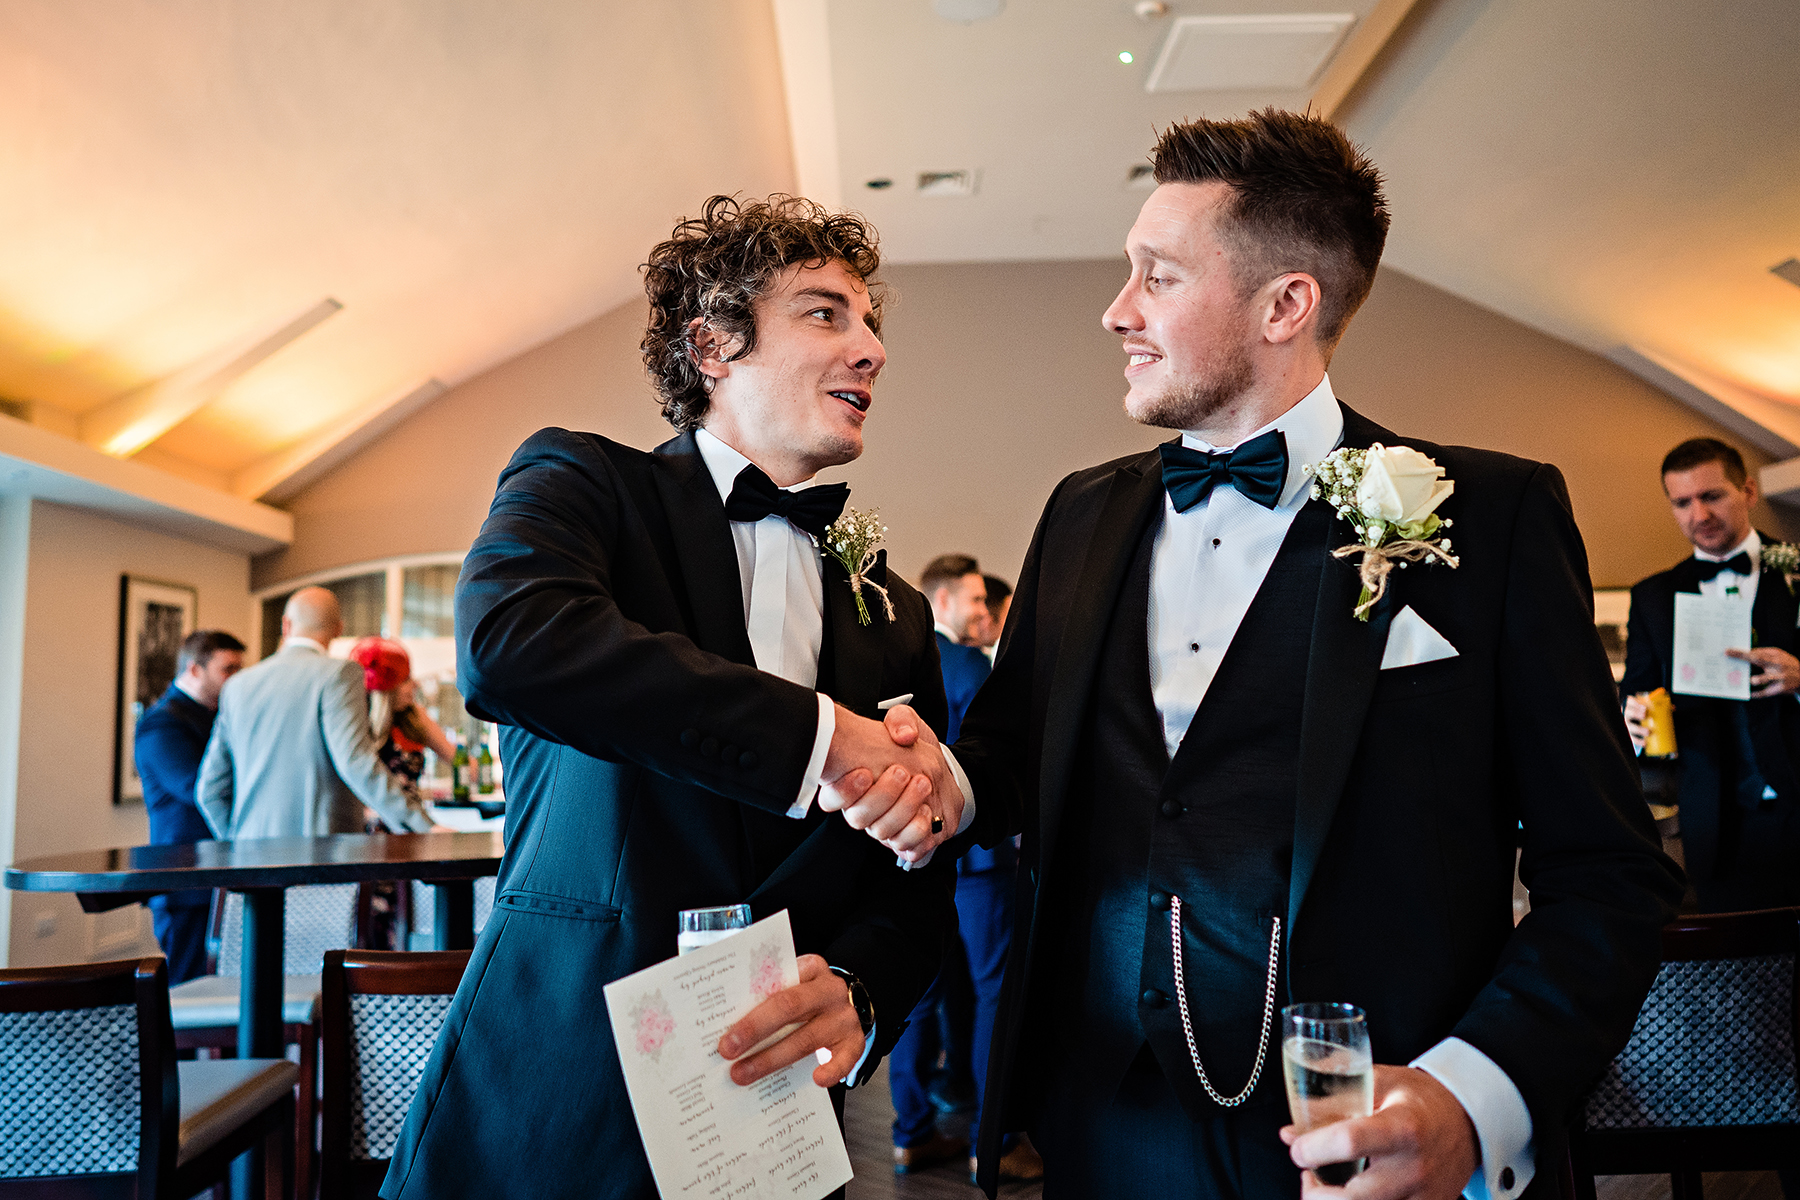 groom shaking hands with a groomsman